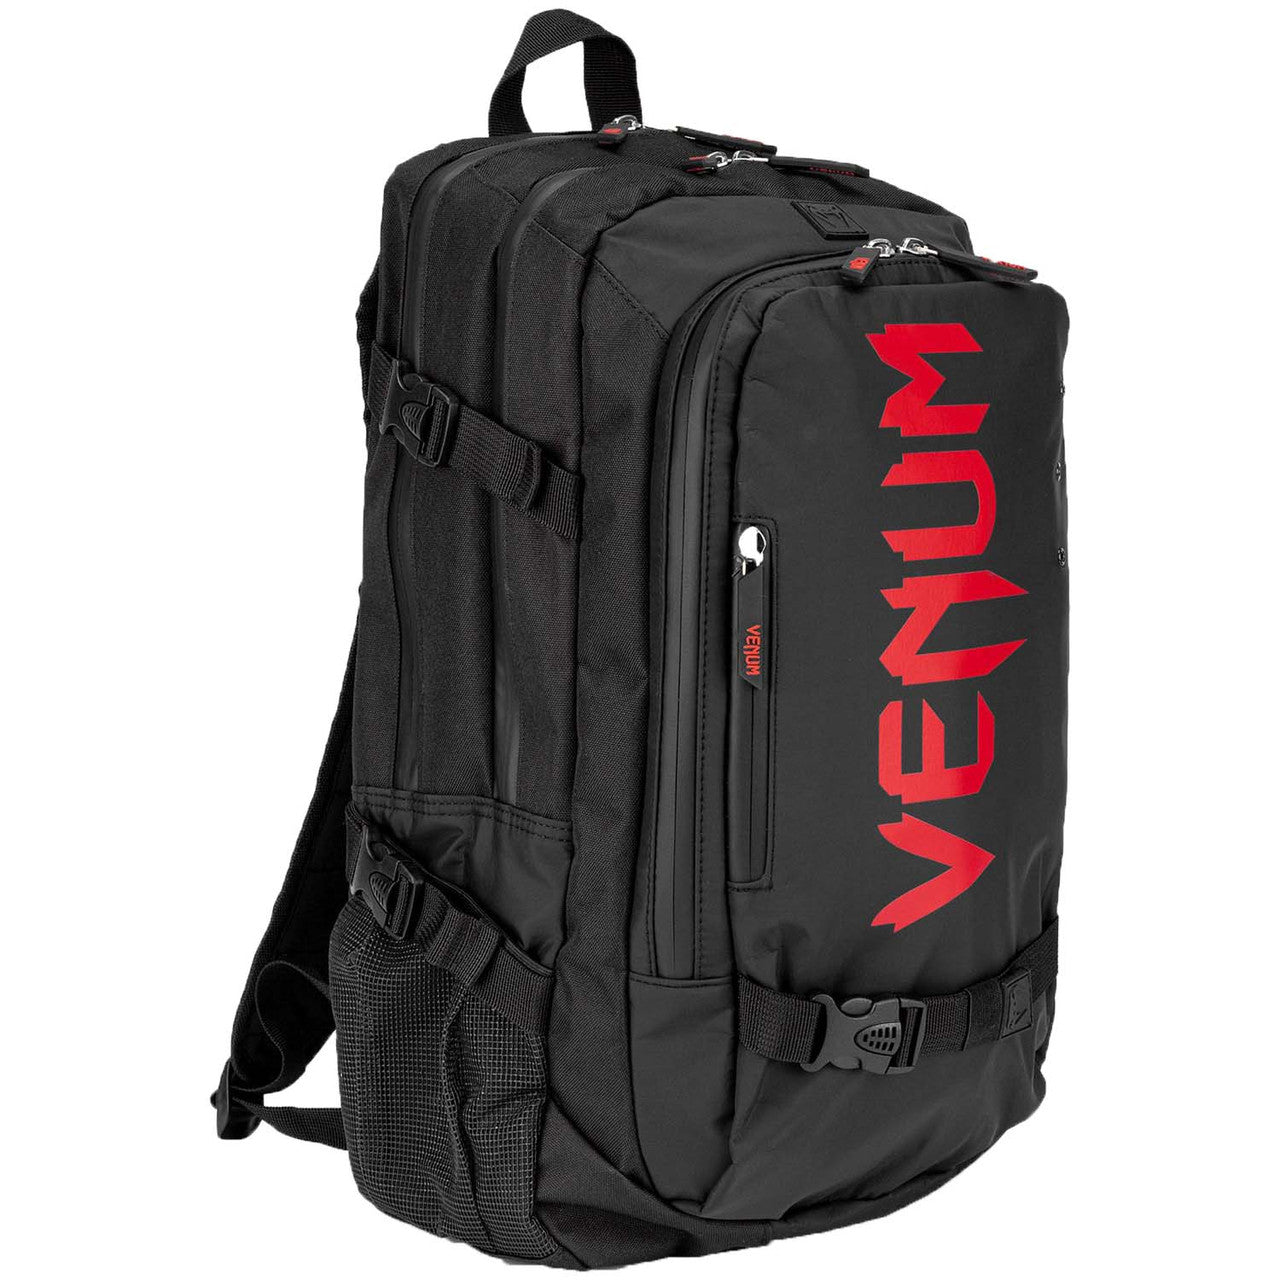 Venum Challenger Pro Evo Back Pack  Black/Red by  Fight Co